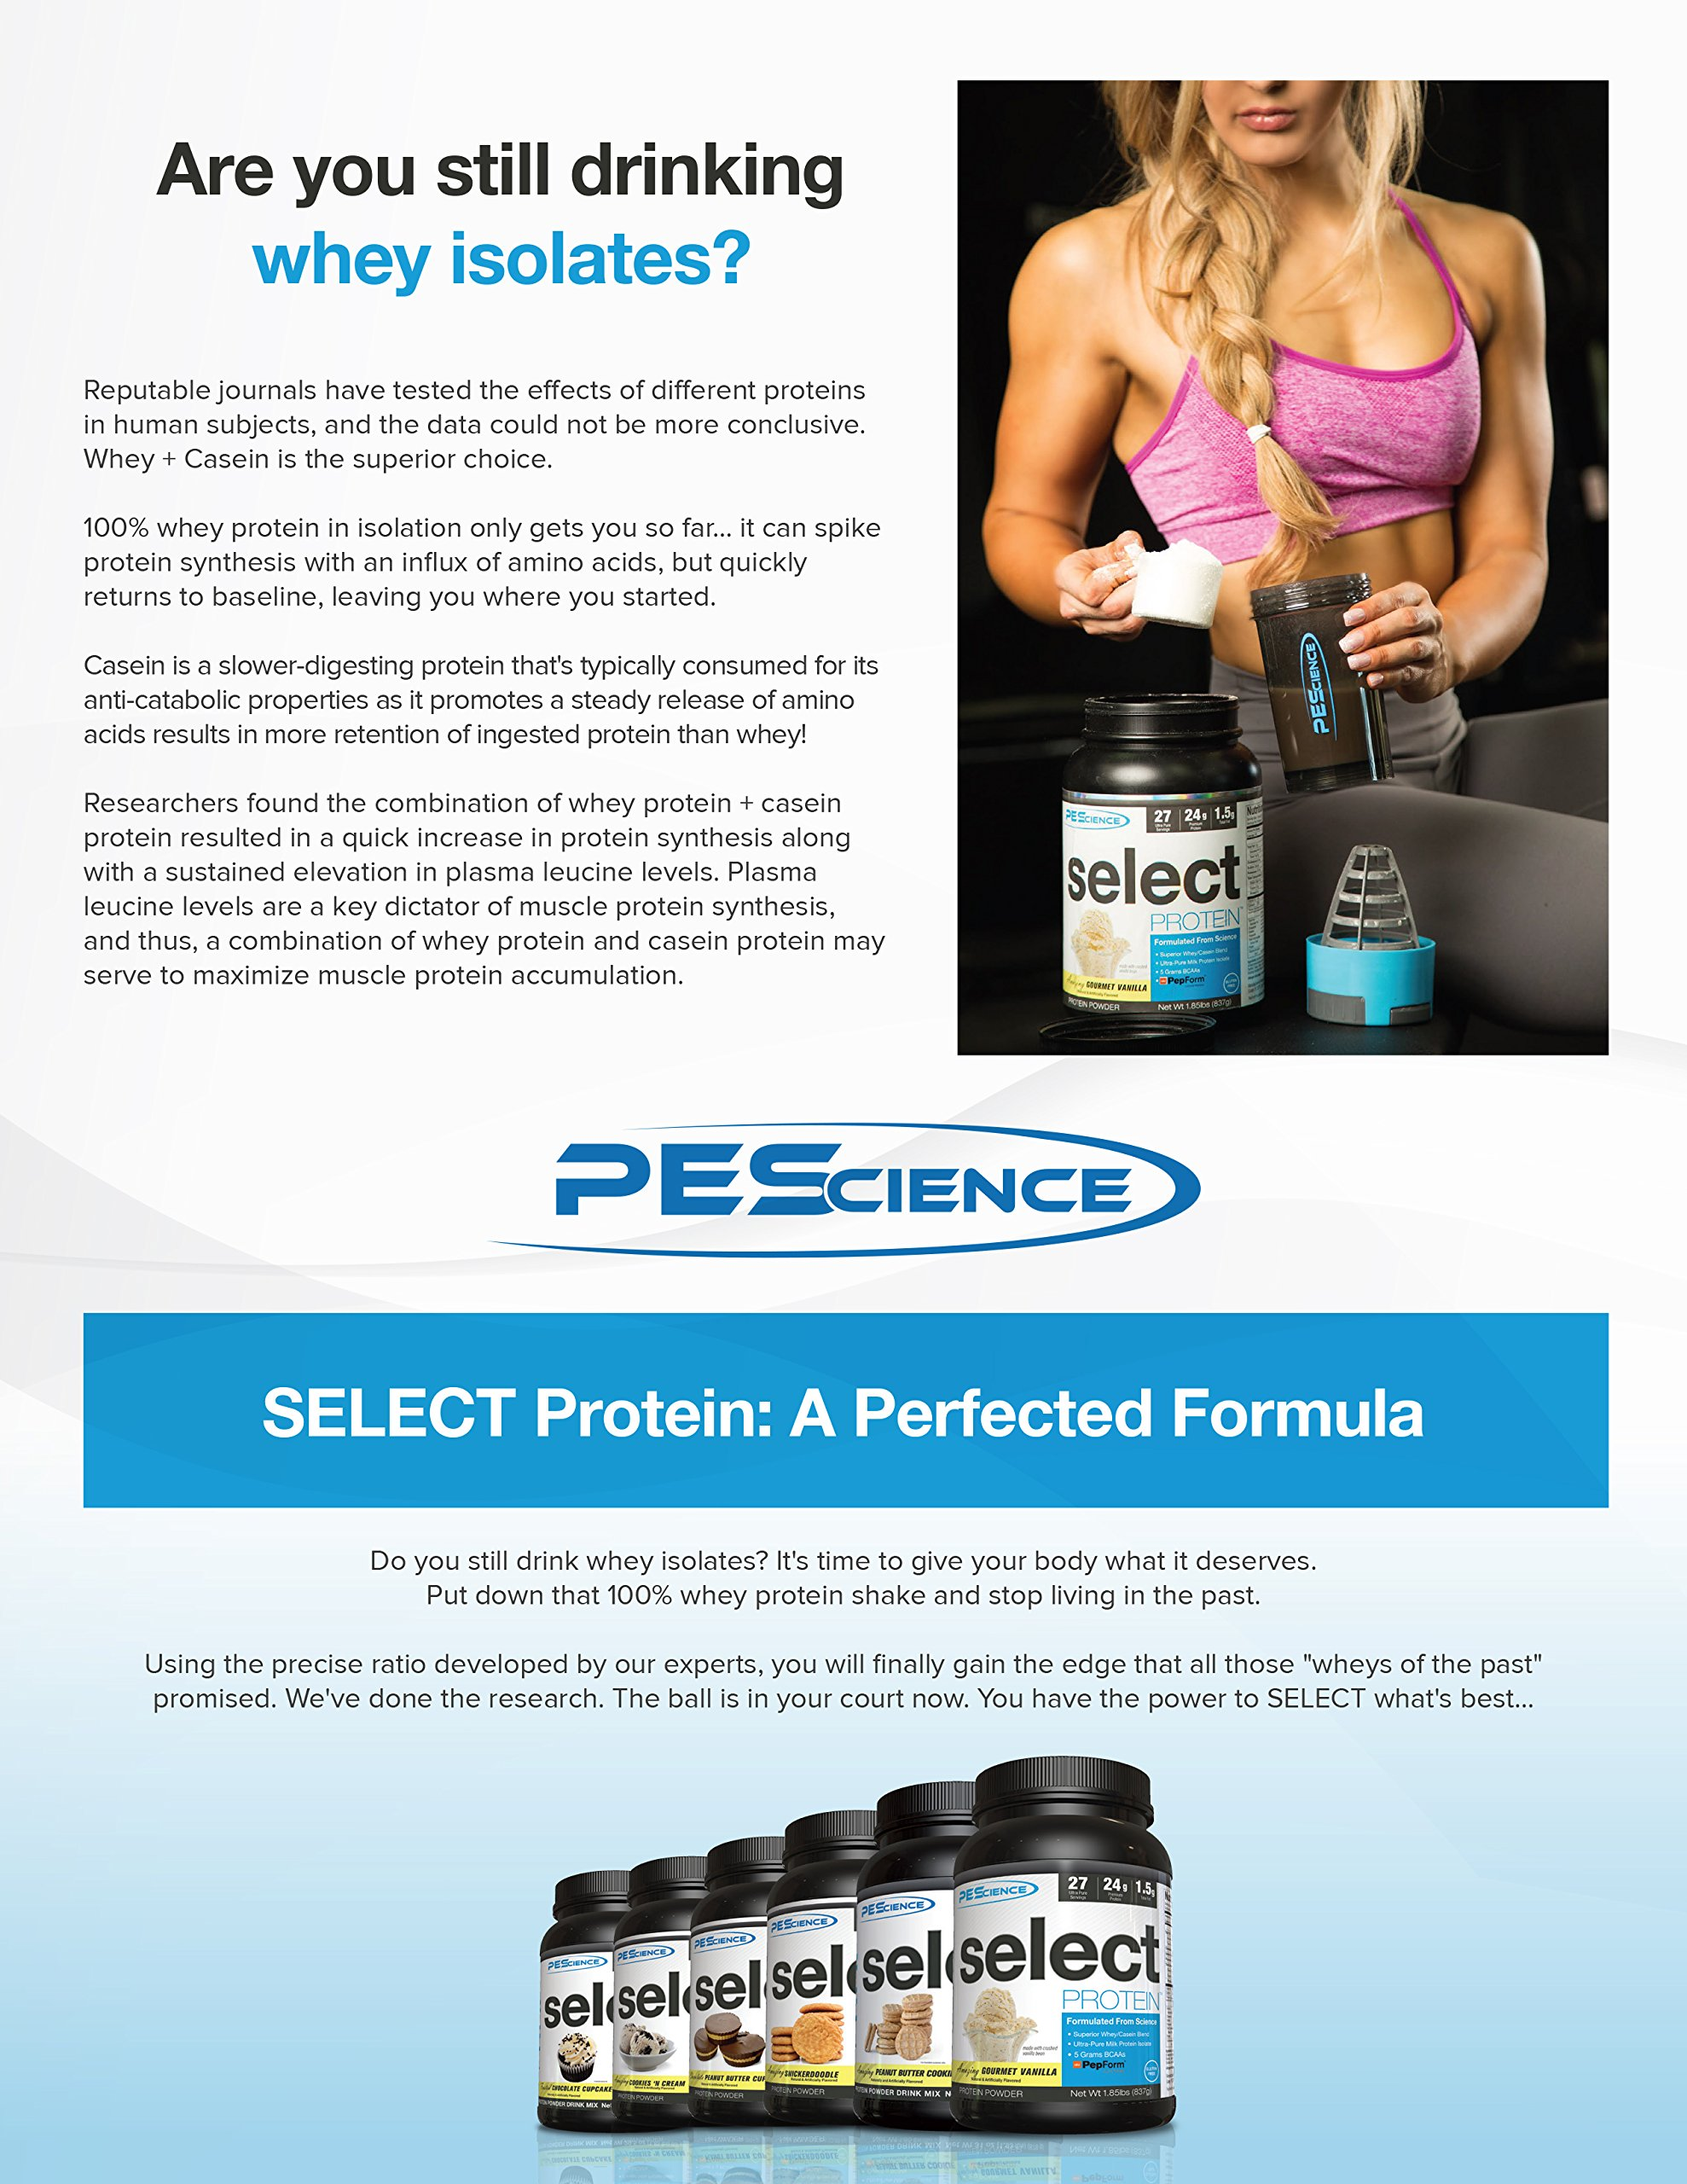 PEScience Select Protein Premium Whey and Casein Blend, Chocolate Peanut Butter Cup, 8 Ounce